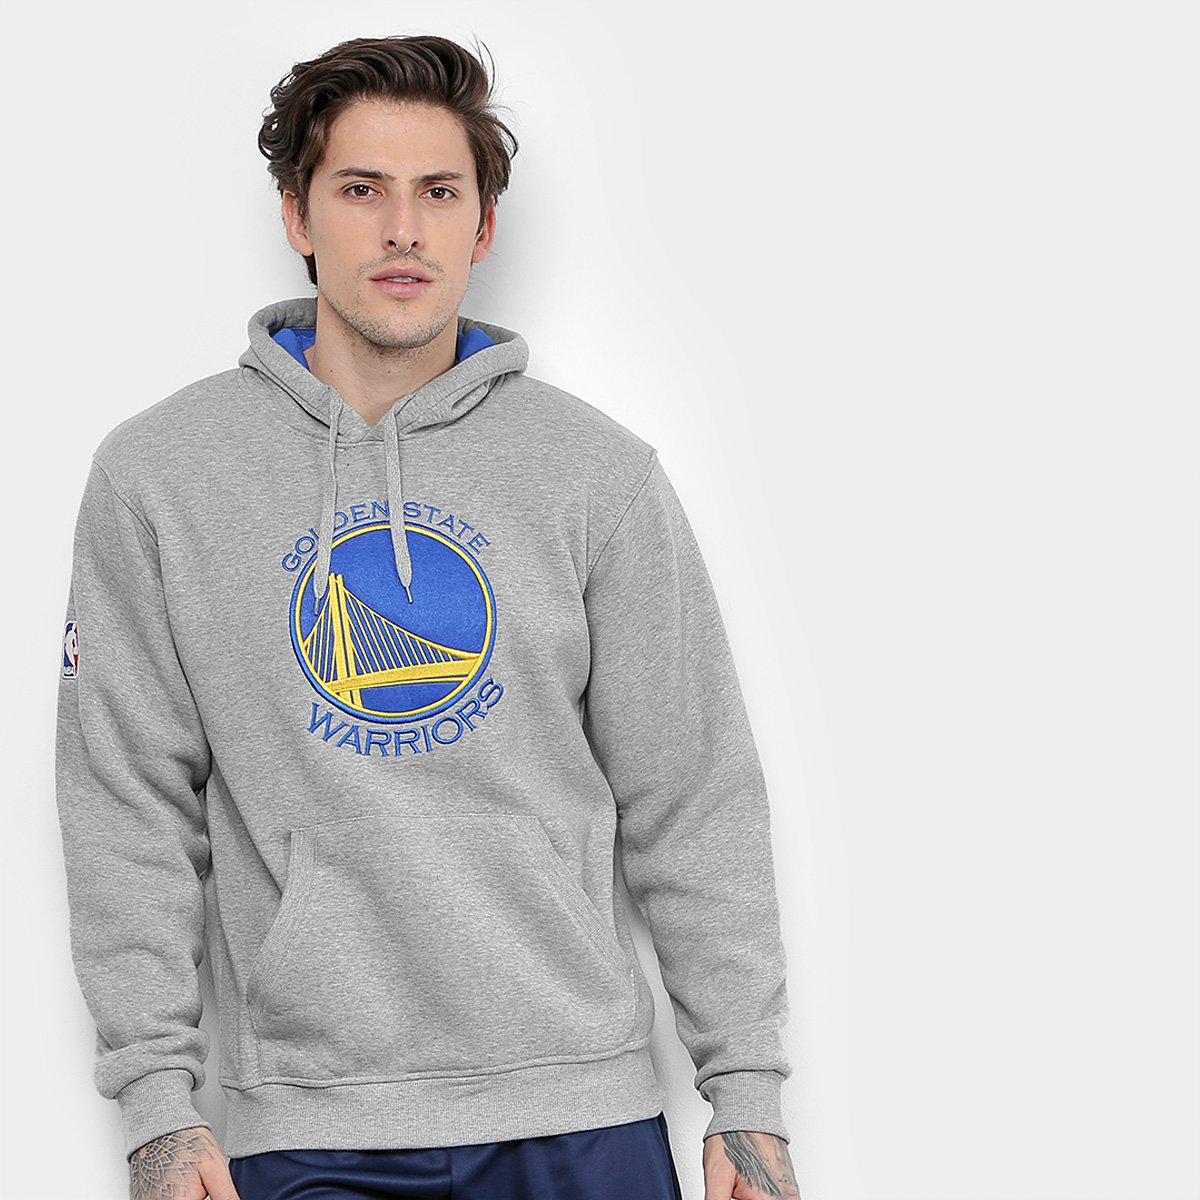 8bce7782e Moletom NBA Golden State Warriors Masculino - Compre Agora